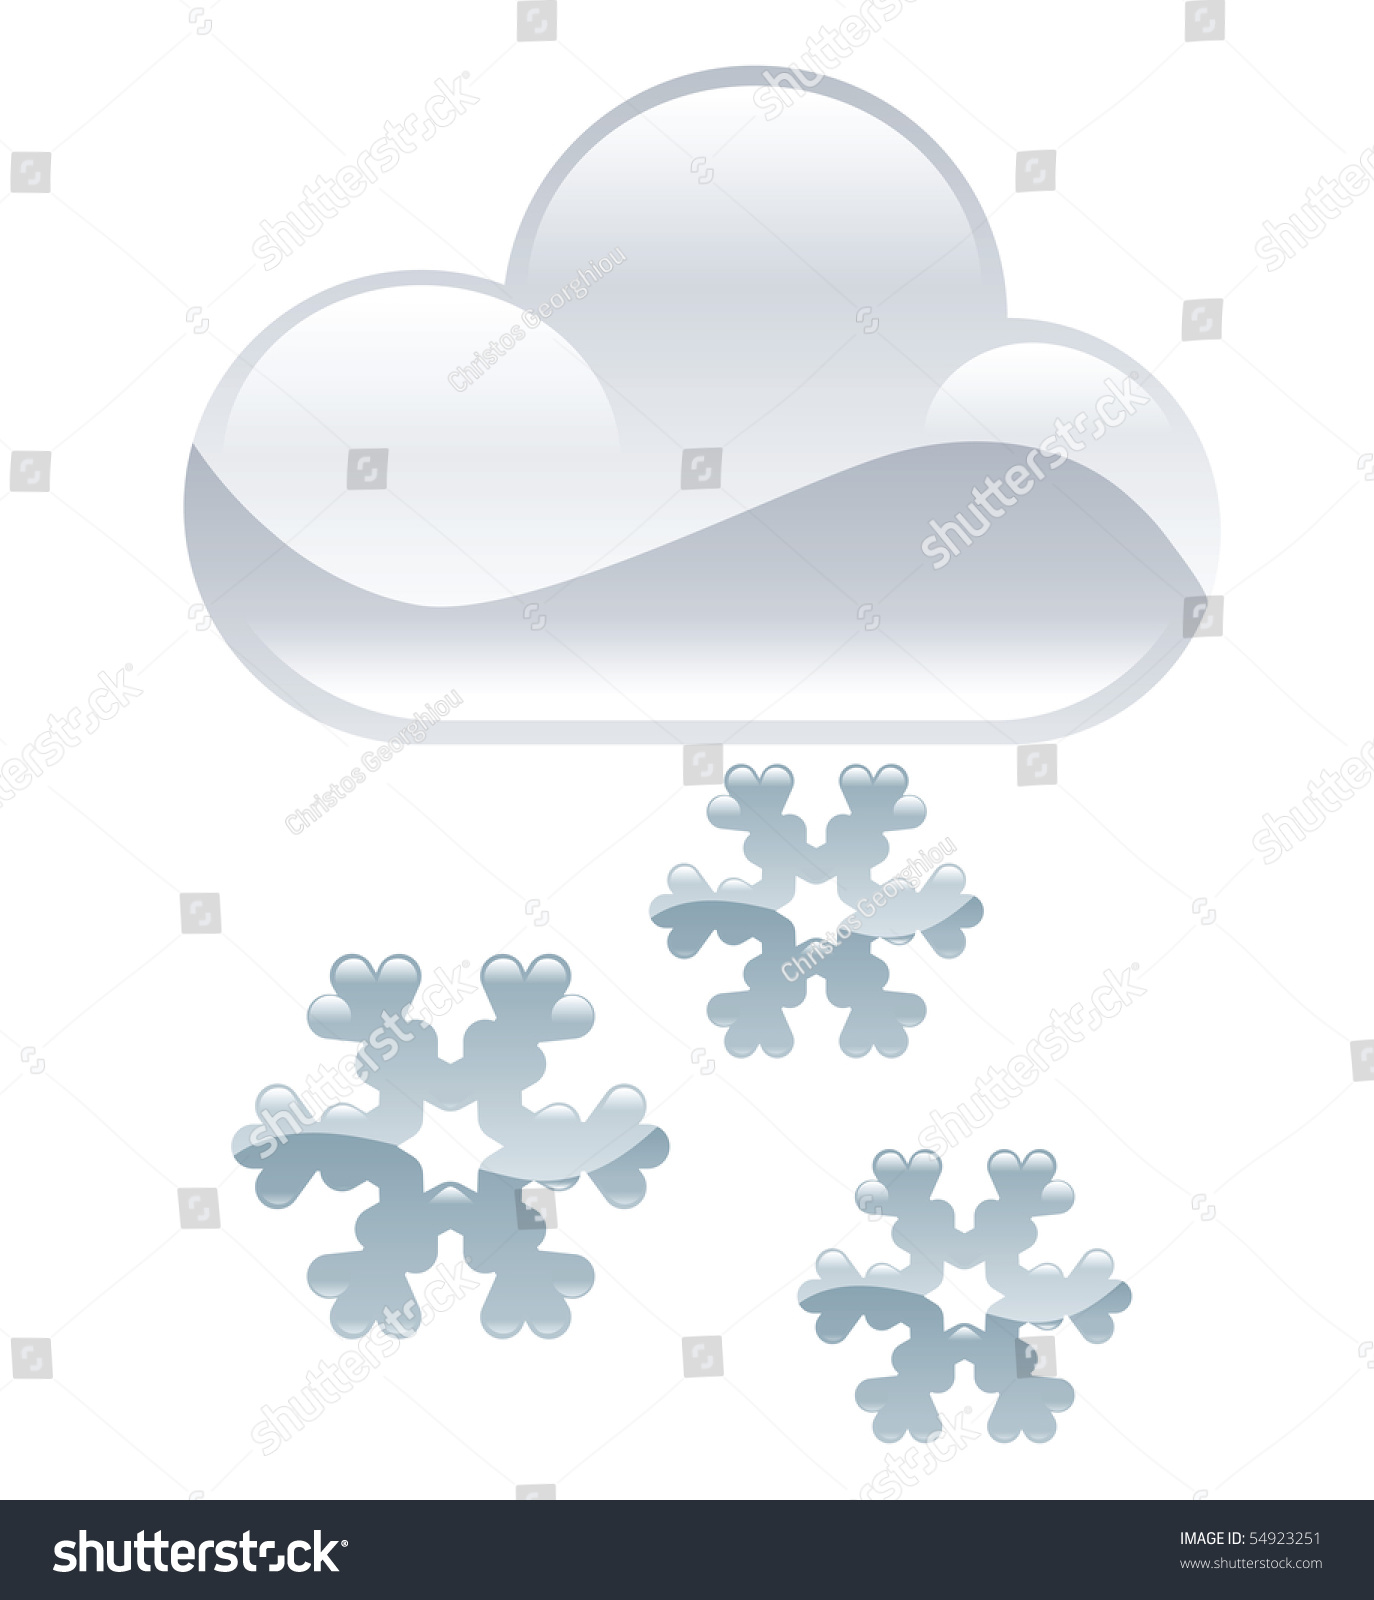 hight resolution of weather icon clipart snow flakes illustration